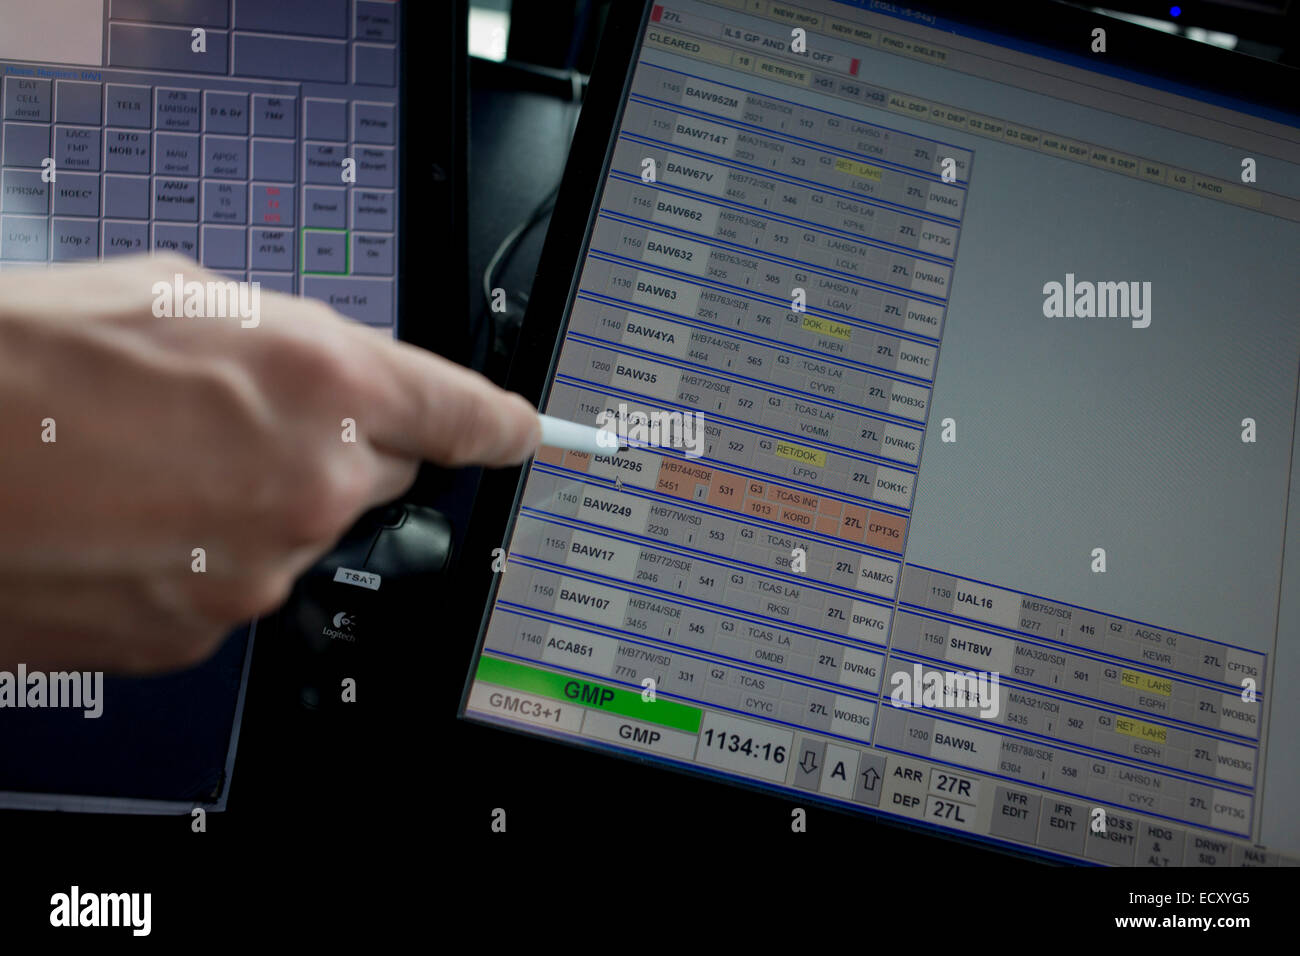 Detail of NATS air traffic controller's hand pointing to flight IDs on screen in control tower at Heathrow airport, - Stock Image